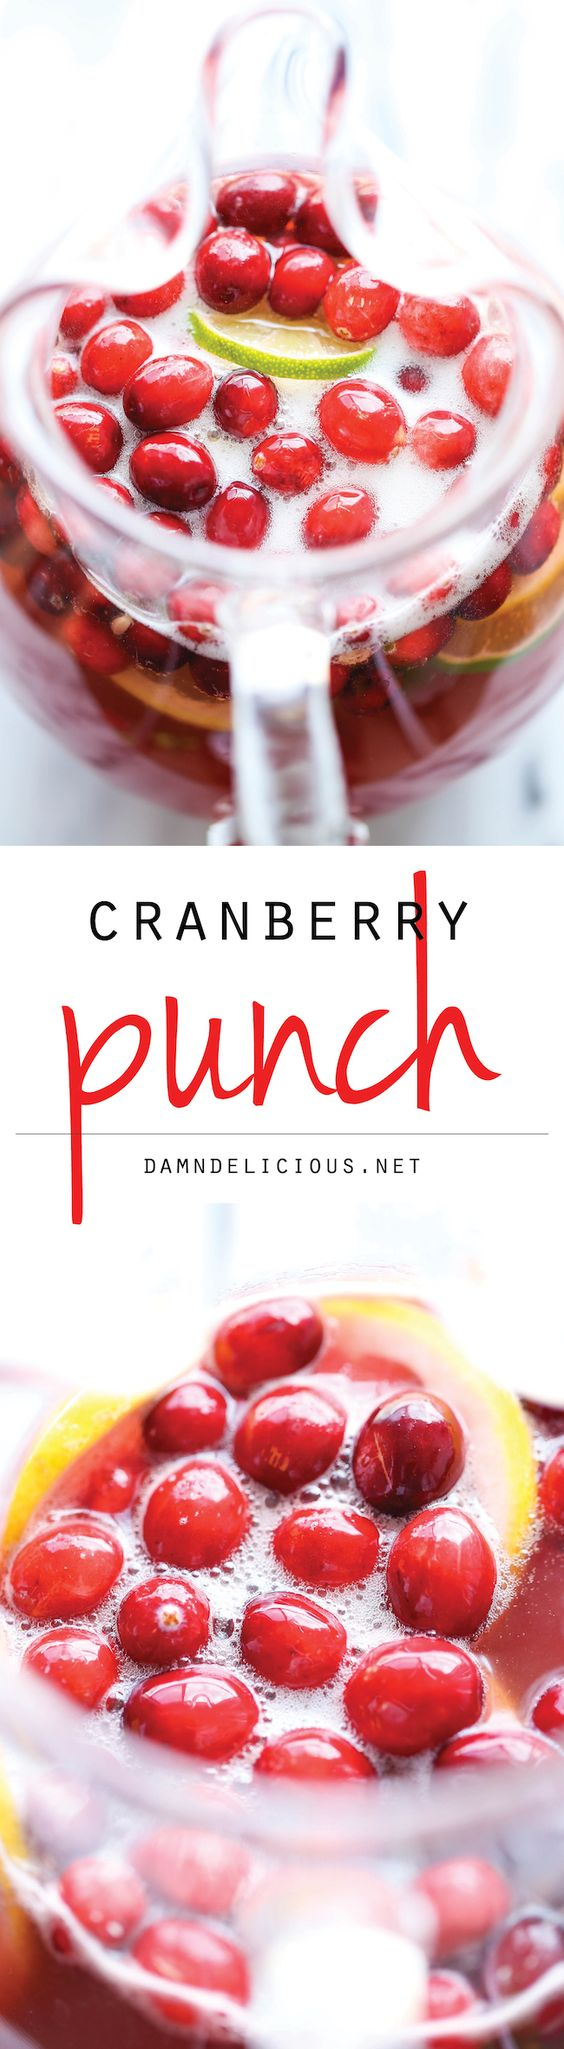 Alcohol Free Cranberry Party Punch Recipe via Damn Delicious - A super easy, refreshing drink so perfect for the holidays! The BEST Easy Non-Alcoholic Drinks Recipes - Creative Mocktails and Family Friendly, Alcohol-Free, Big Batch Party Beverages for a Crowd! #mocktails #virgindrinks #alcoholfreedrinks #nonalcoholicdrinks #familyfriendlydrinks #partypunch #partydrinks #newyearseve #partydrinkrecipes